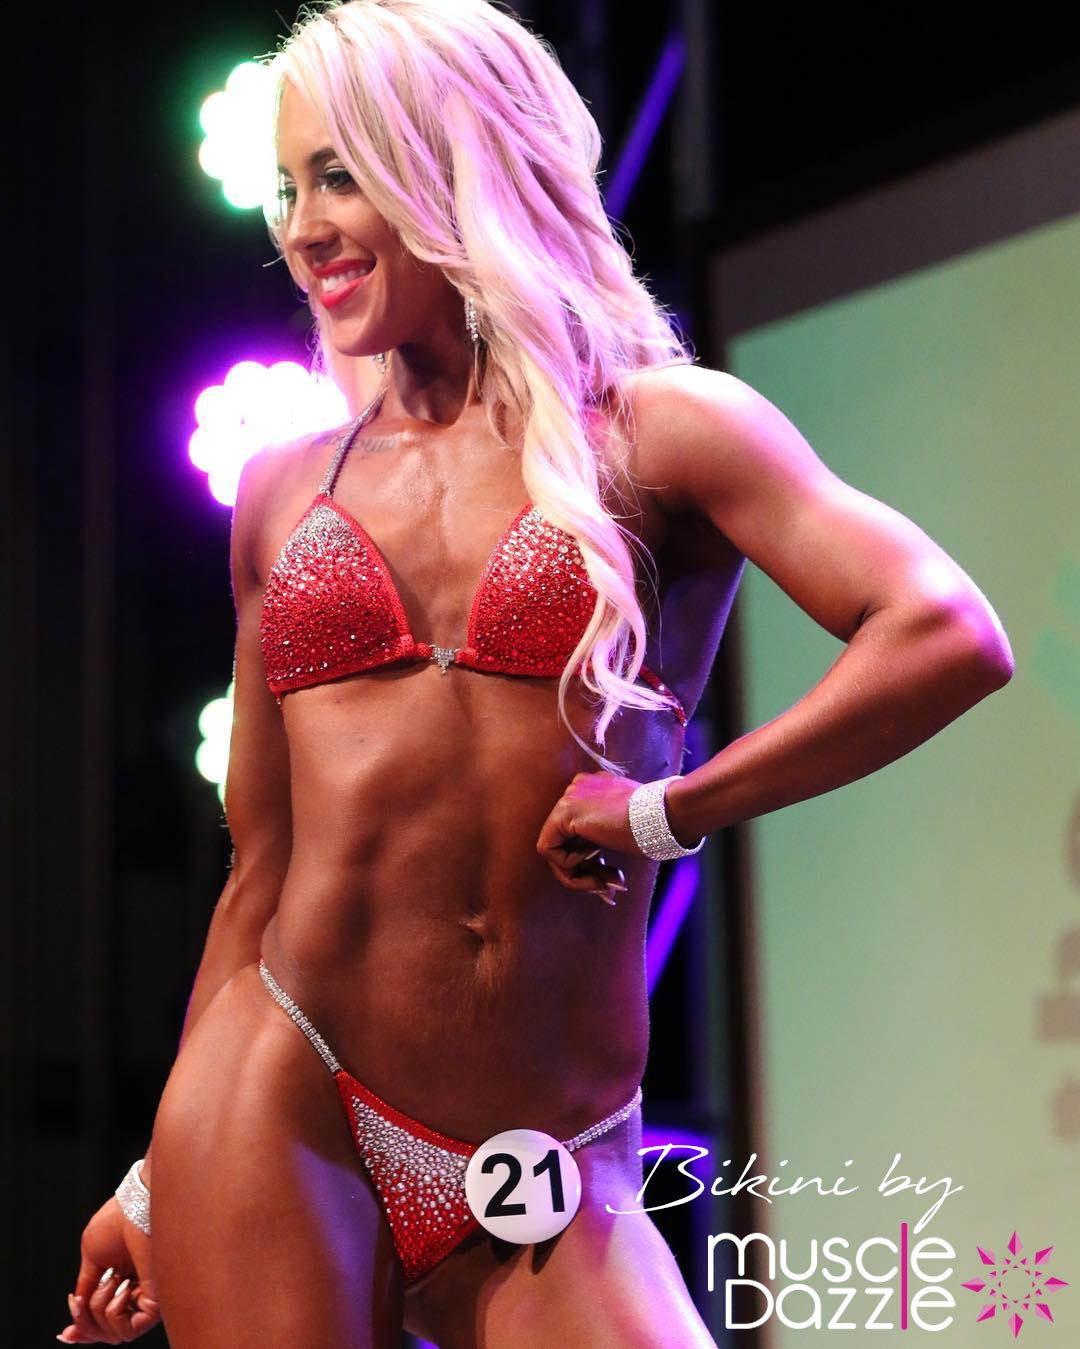 Red competition bikini